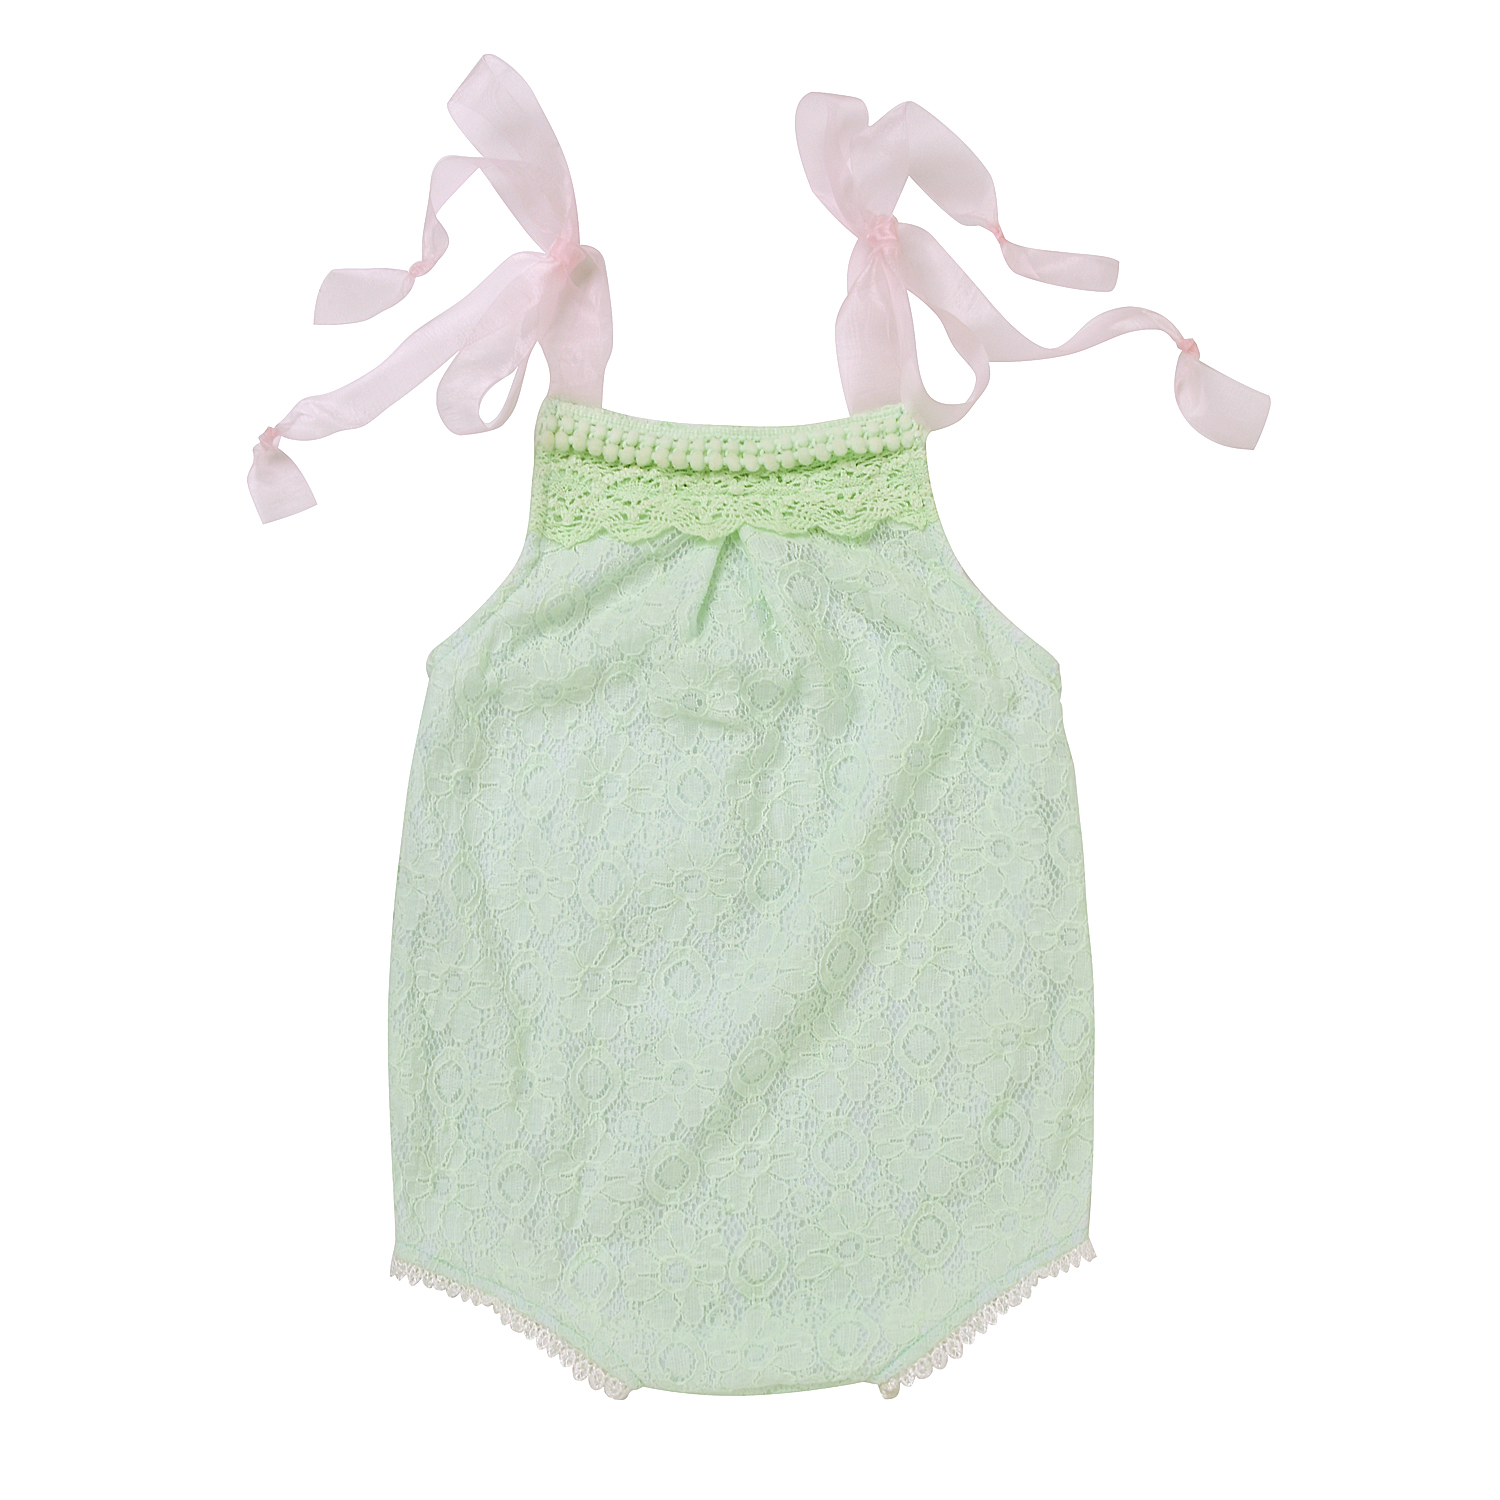 Cute Newborn Infant Baby Girls Romper Lace Floral Strap Romper Jumpsuit Outfits Summer Baby Clothes Toddler Jumpsuit newborn infant baby girl clothes strap lace floral romper jumpsuit outfit summer cotton backless one pieces outfit baby onesie